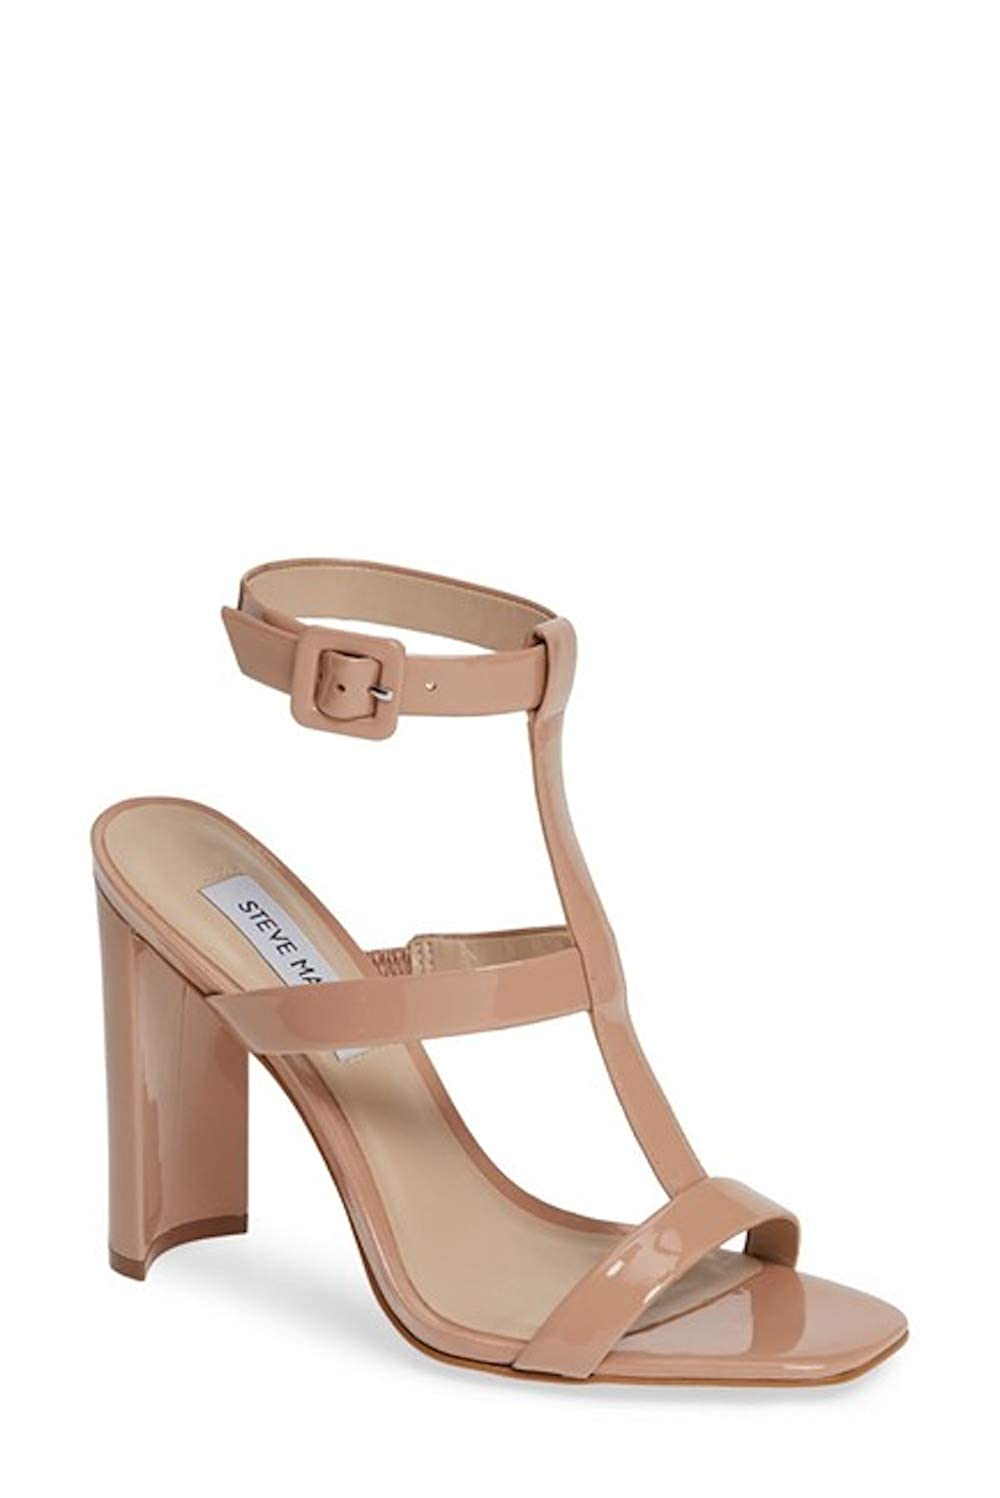 Dk bluesh Steve Madden Womens Megan Nubuck Open Toe Special Occasion Ankle Strap Sandals